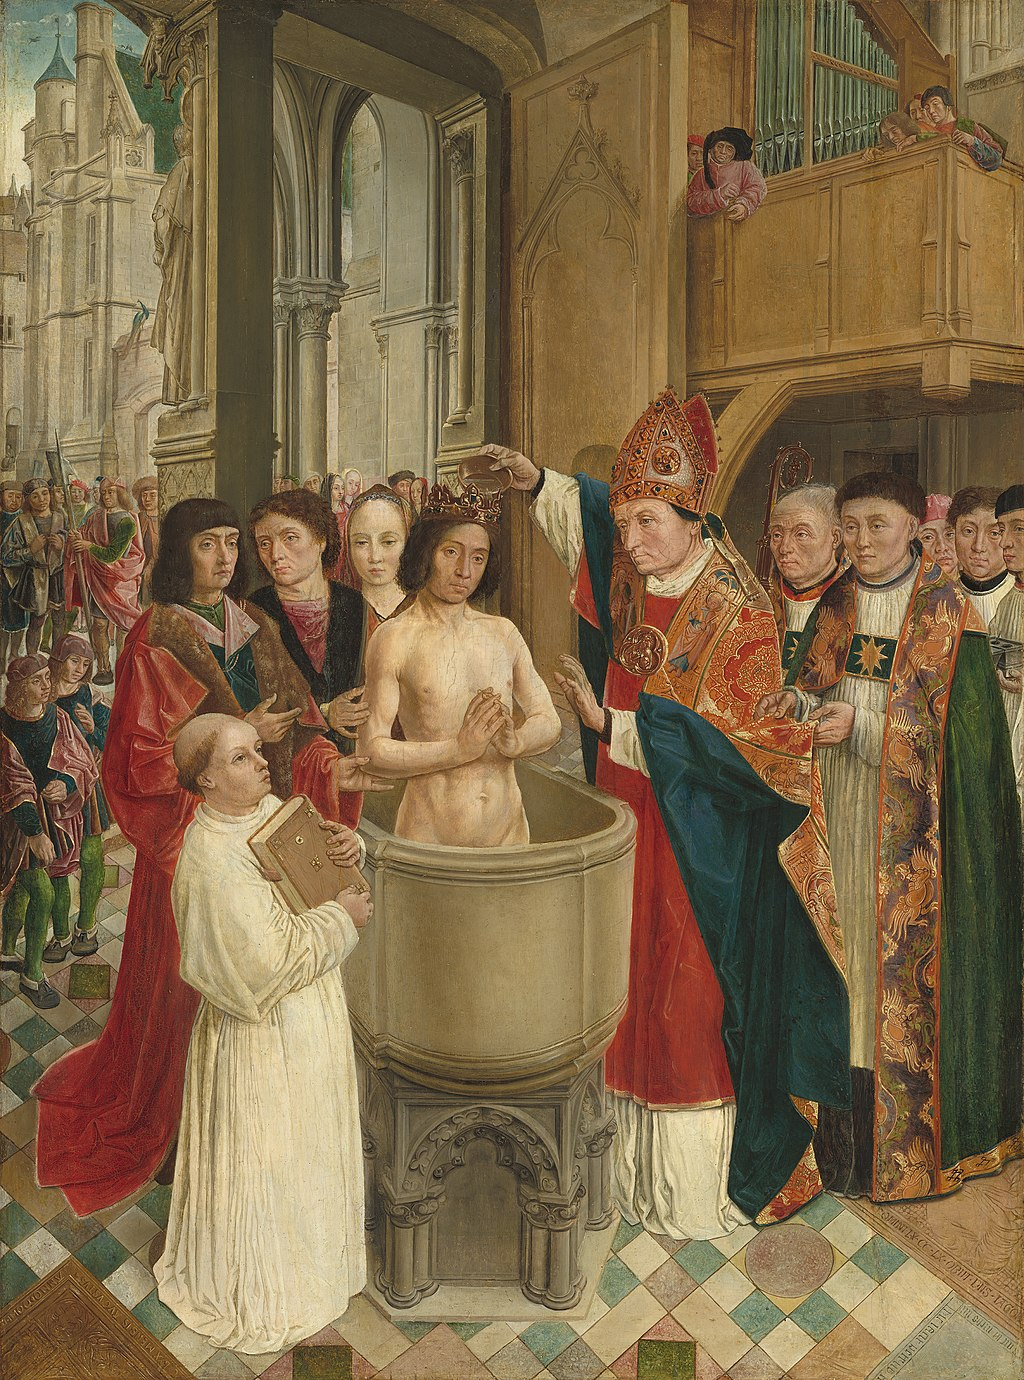 Saint Remigius baptizes Clovis I in Reims, by the Master of Saint Gilles, c. 1500